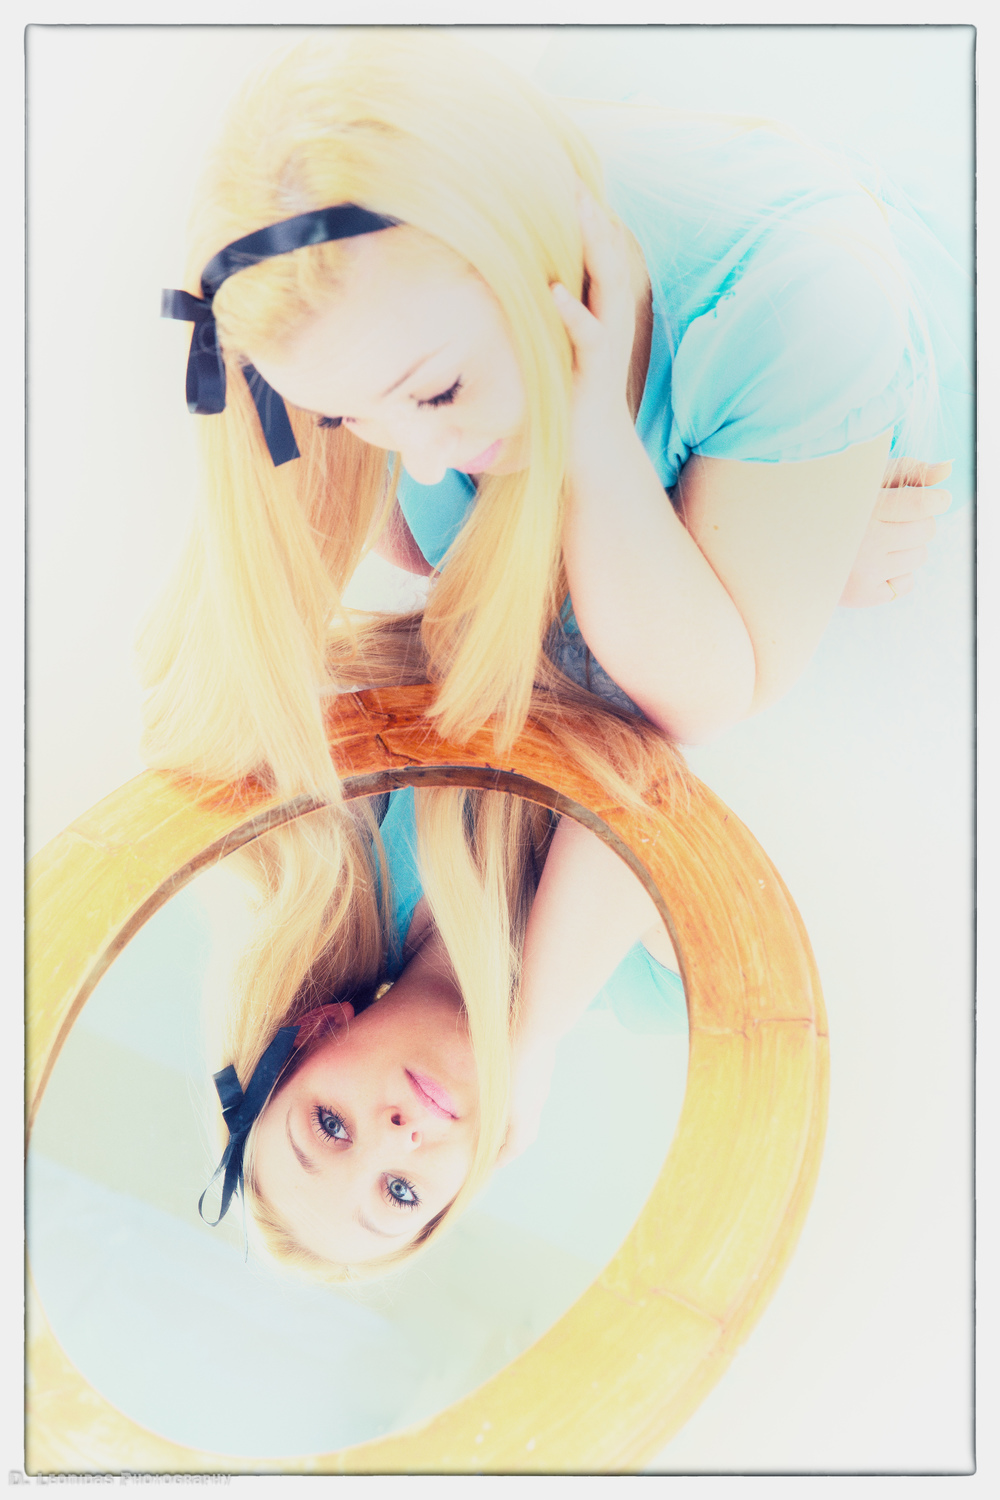 00277_April 23, 2015_Alice in Wonderland-Edit.jpg